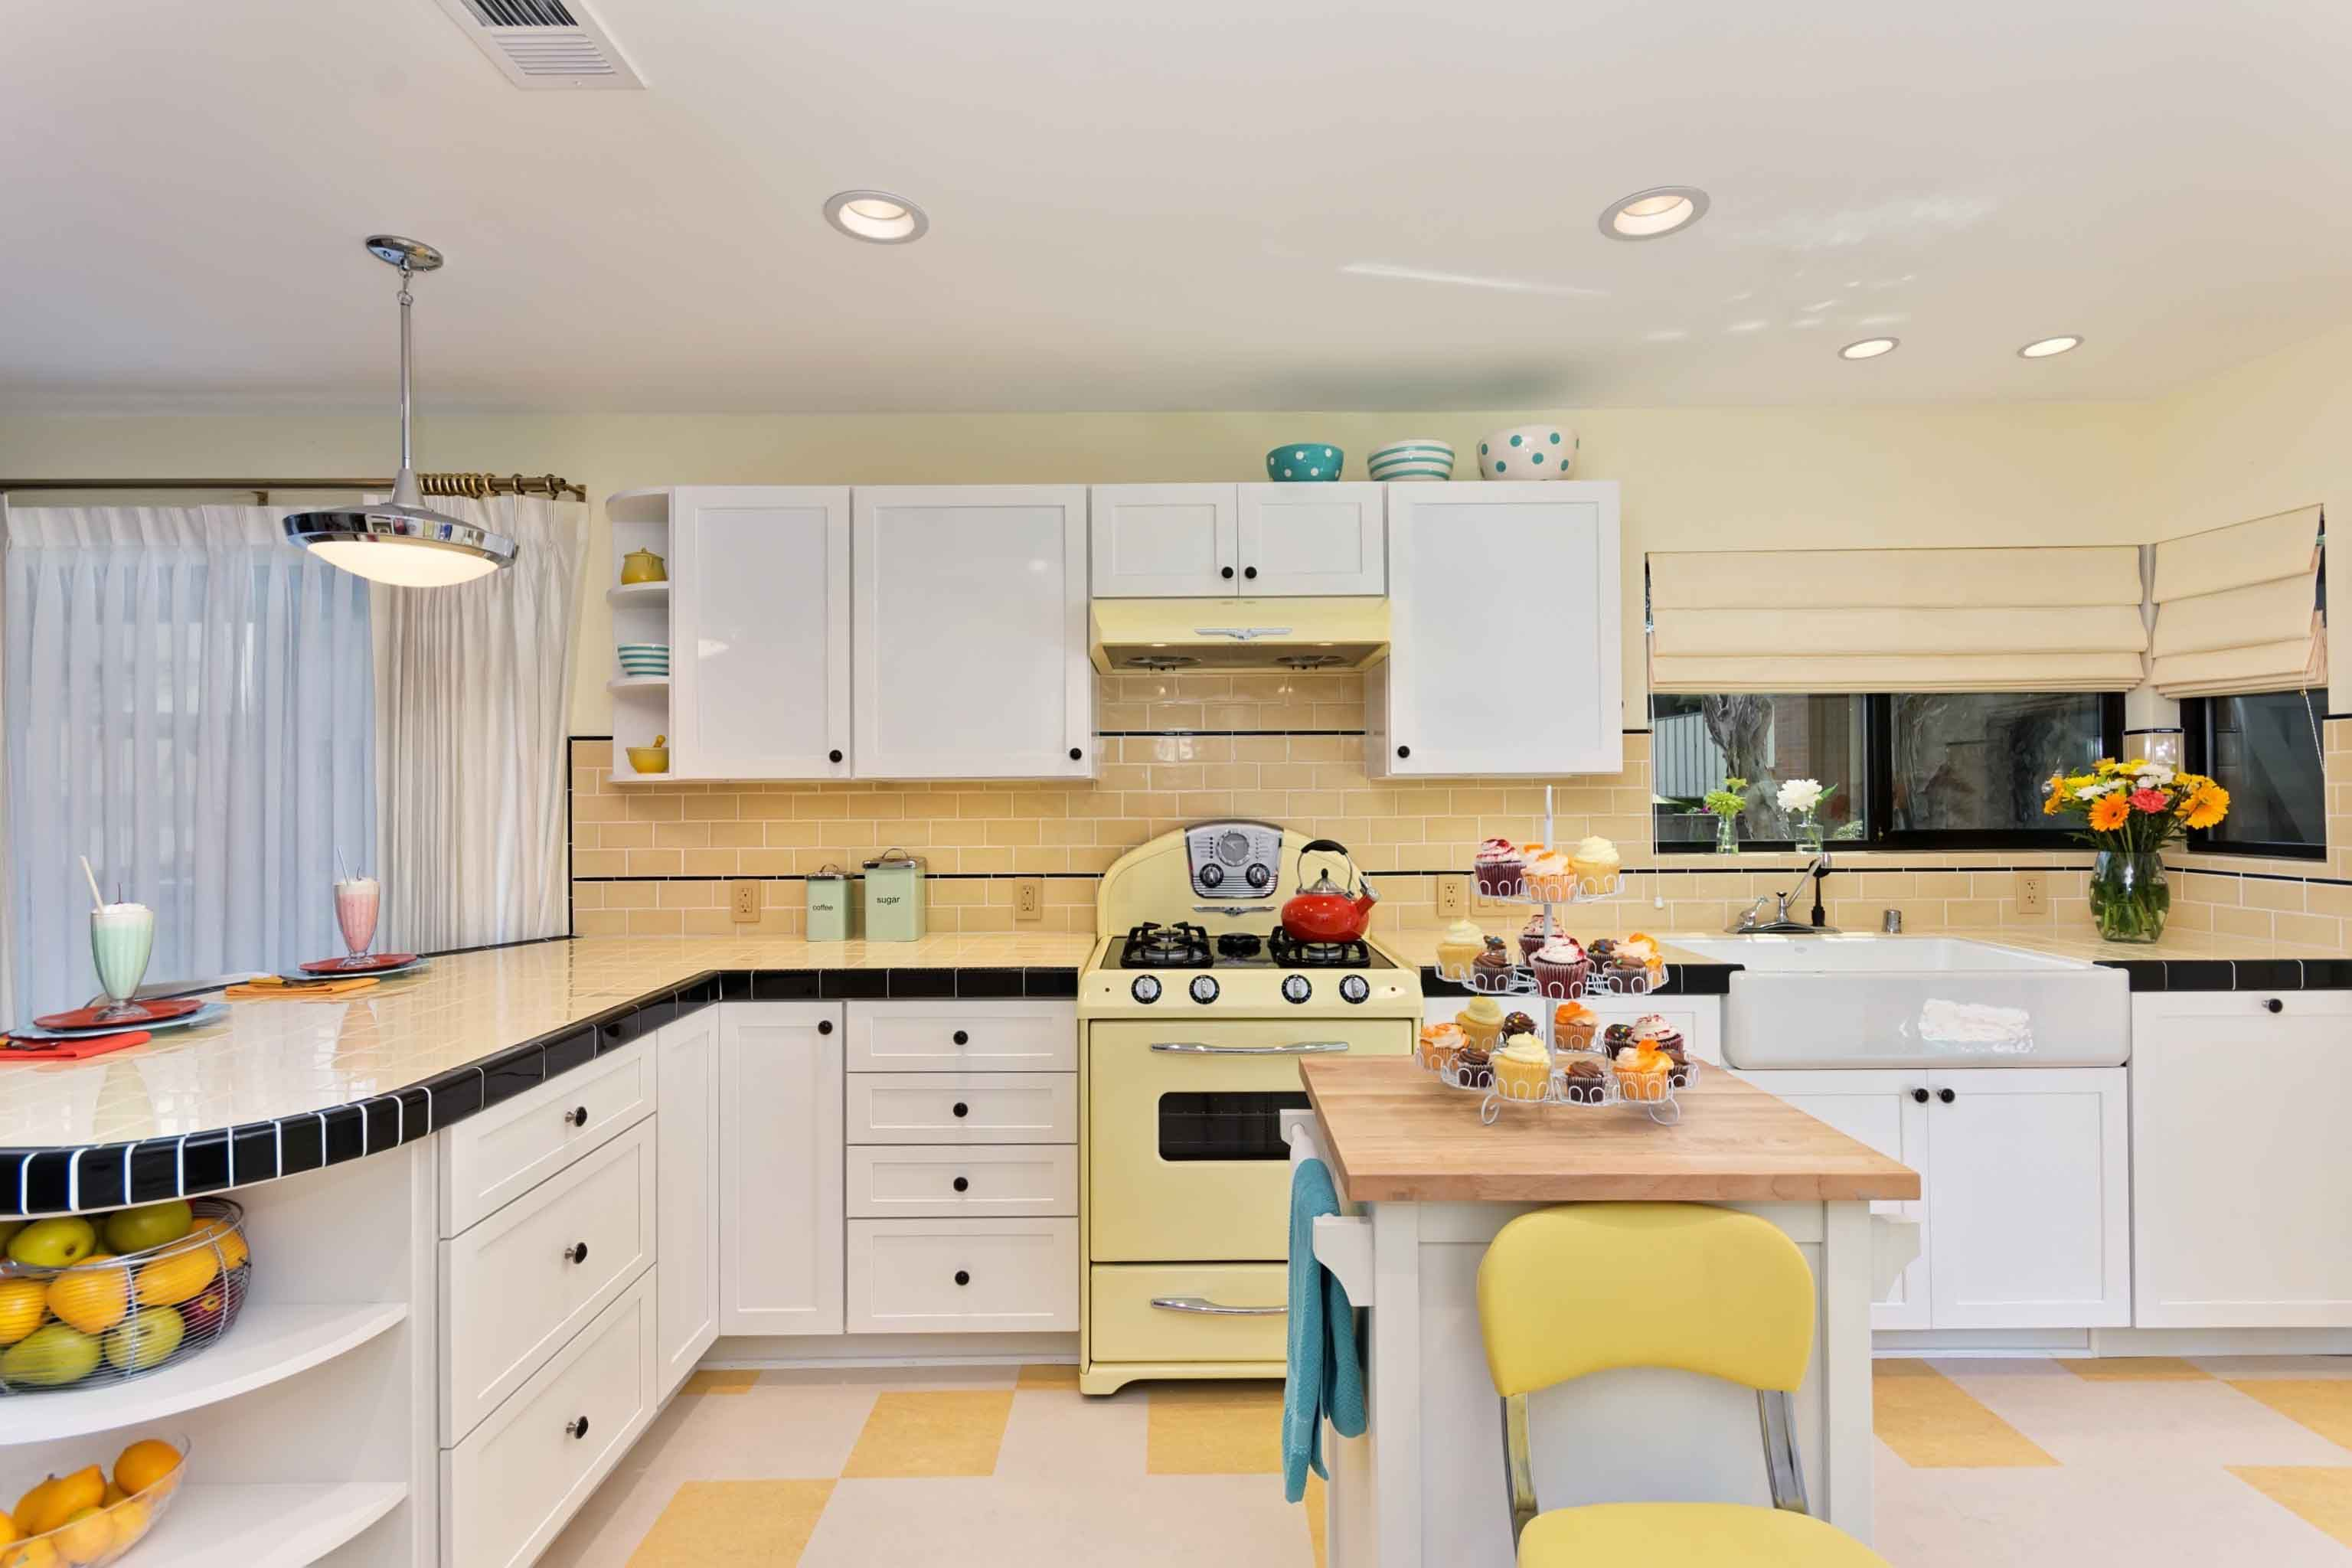 Captivating Classic White And Warm Yellow Kitchen Ideas Kitchen Inspiration Design Tile Countertops Kitchen Modern Kitchen Design